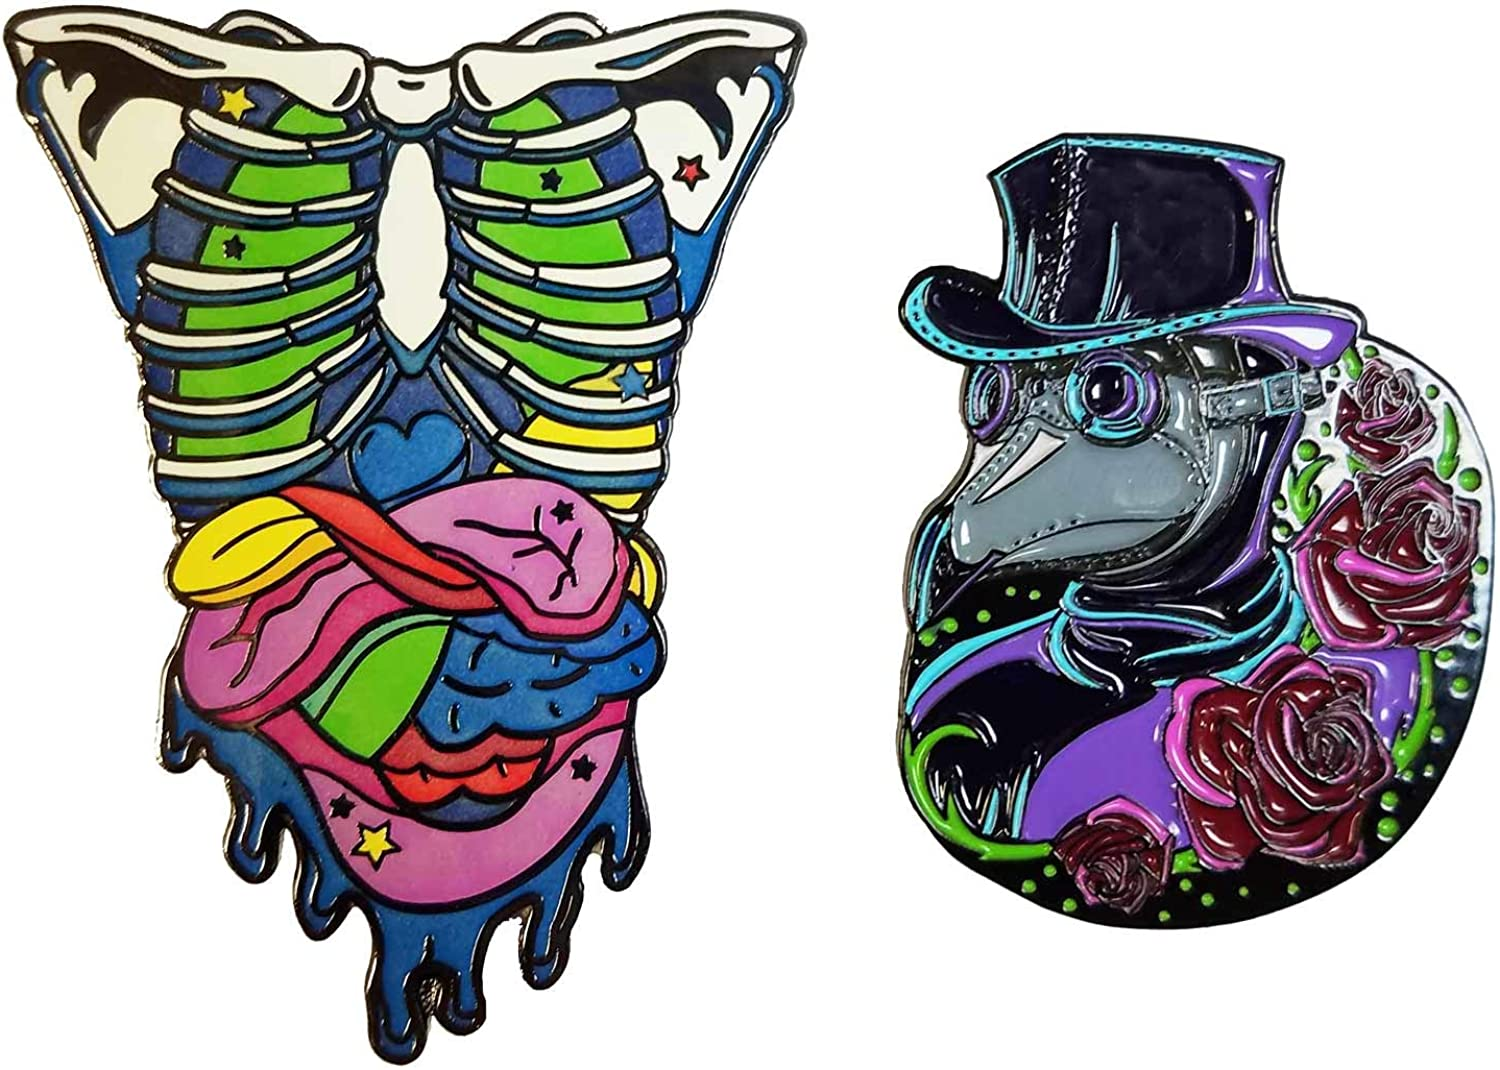 Candy Gore Rib Cage And Gummy Guts Neon Glow In The Dark 2 Enamel Pin And Plague Doctor 1 5 Enamel Pin Set Amazon Ca Jewelry Choose from over a million free vectors, clipart graphics, vector art images, design templates, and illustrations created by artists worldwide! candy gore rib cage and gummy guts